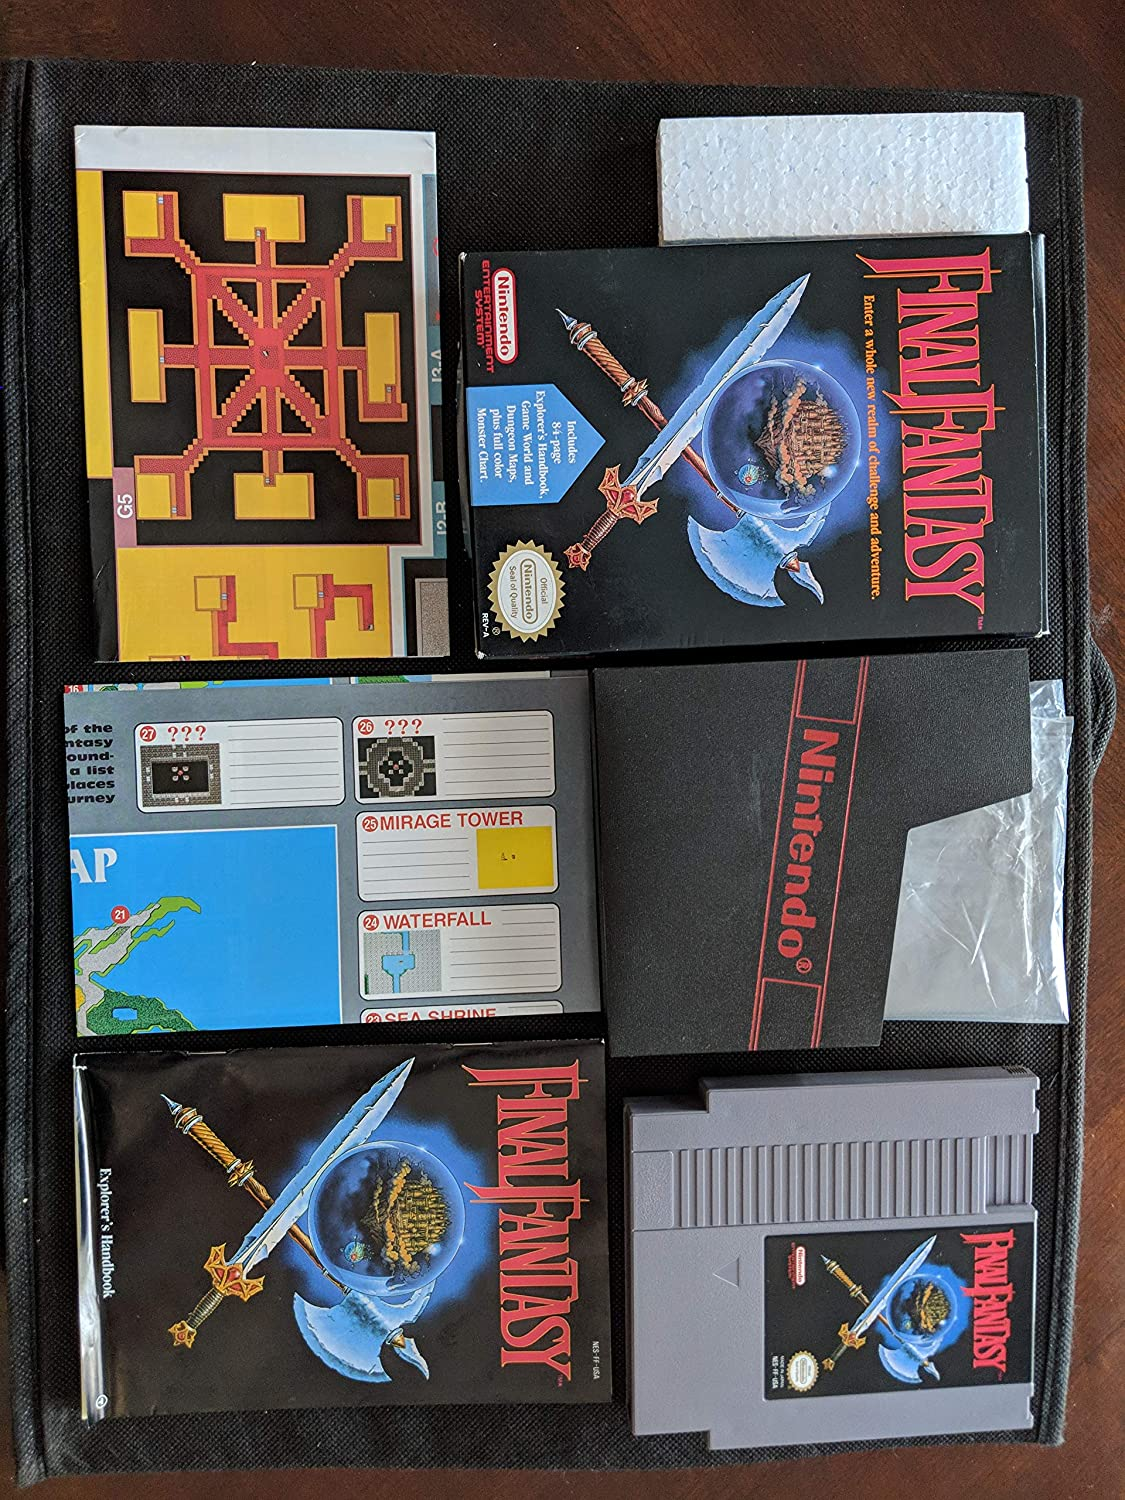 New Video Games & Consoles Honest Set Of 5 Nes Game Cases